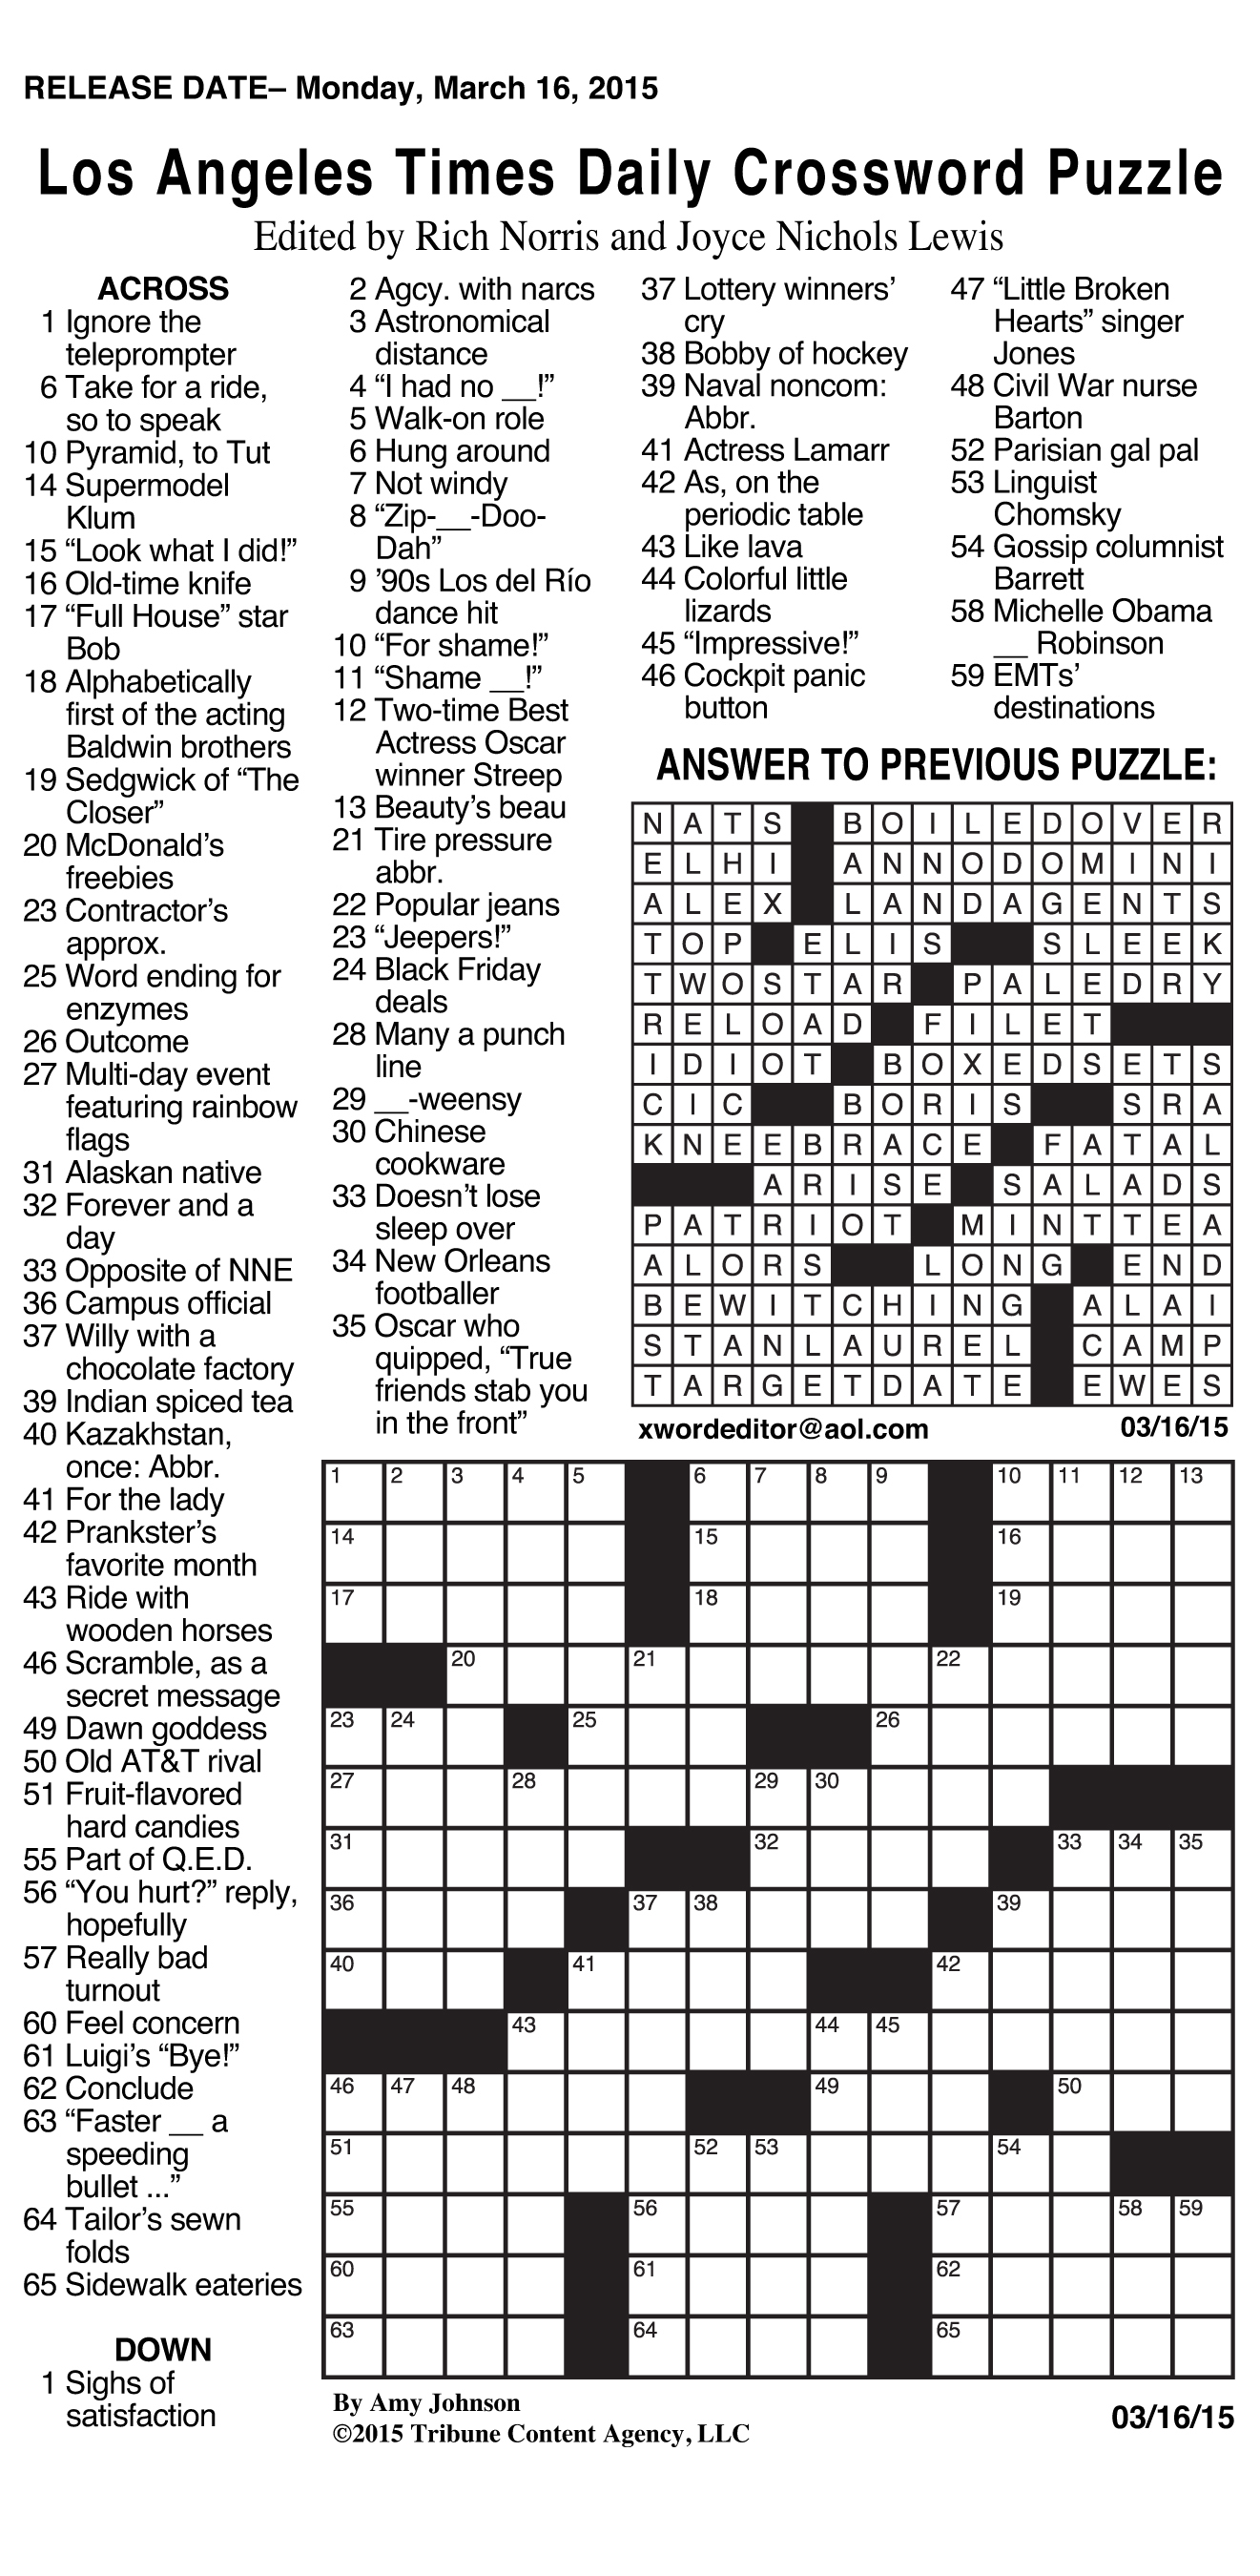 Sample Of Los Angeles Times Daily Crossword Puzzle | Tribune Content - Printable Crossword Puzzles Celebrities